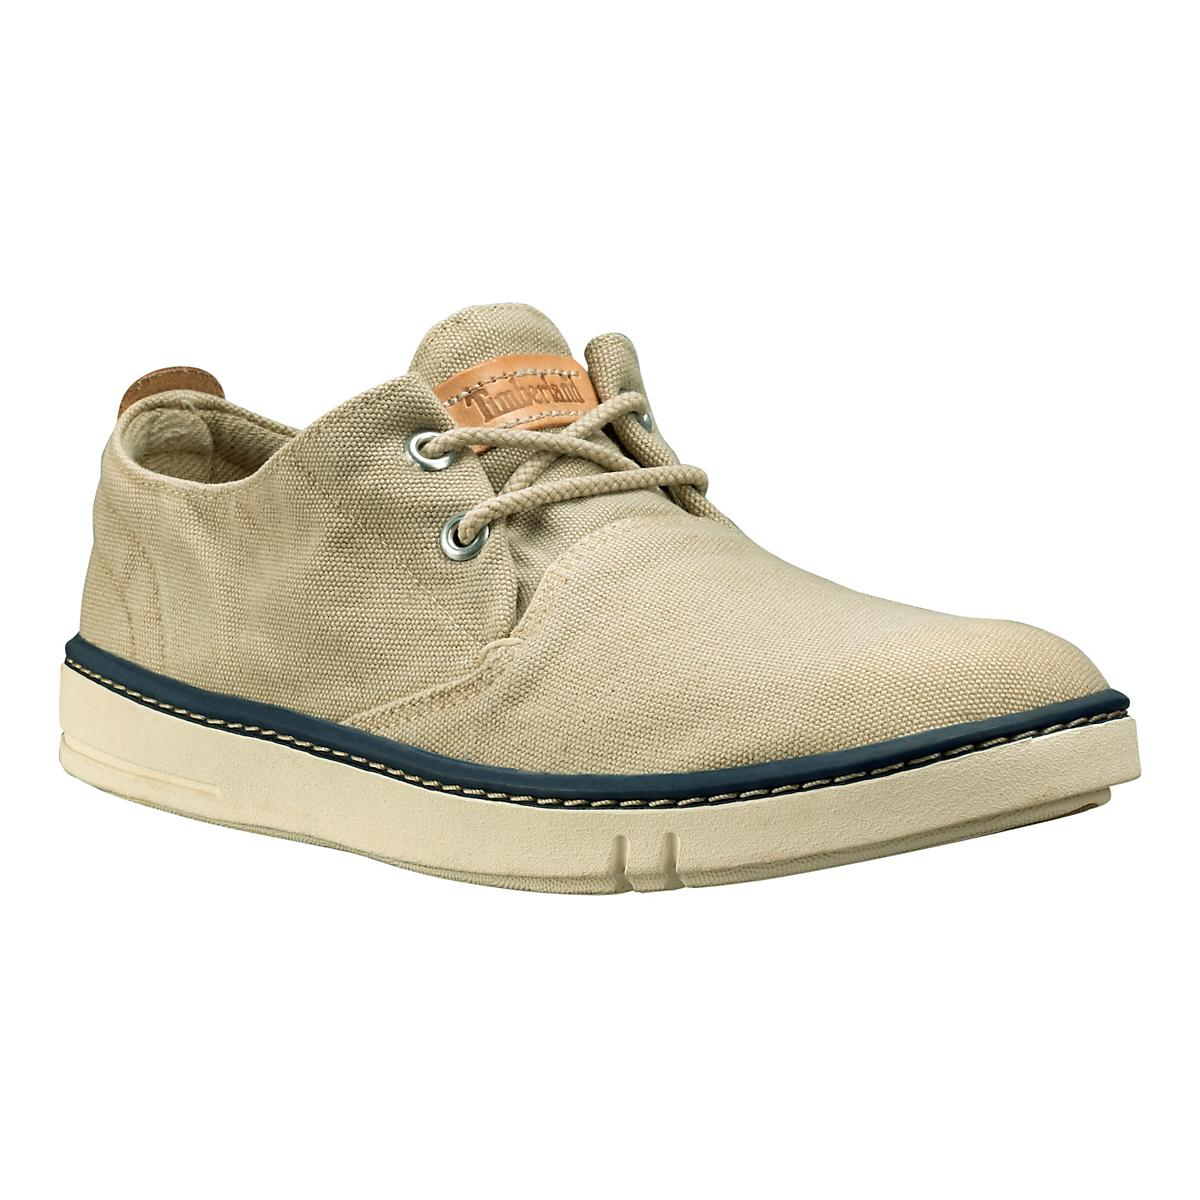 Womens Timberland EK Hookset Handcrafted Oxford Casual Shoe at Road Runner  Sports f508f84b45